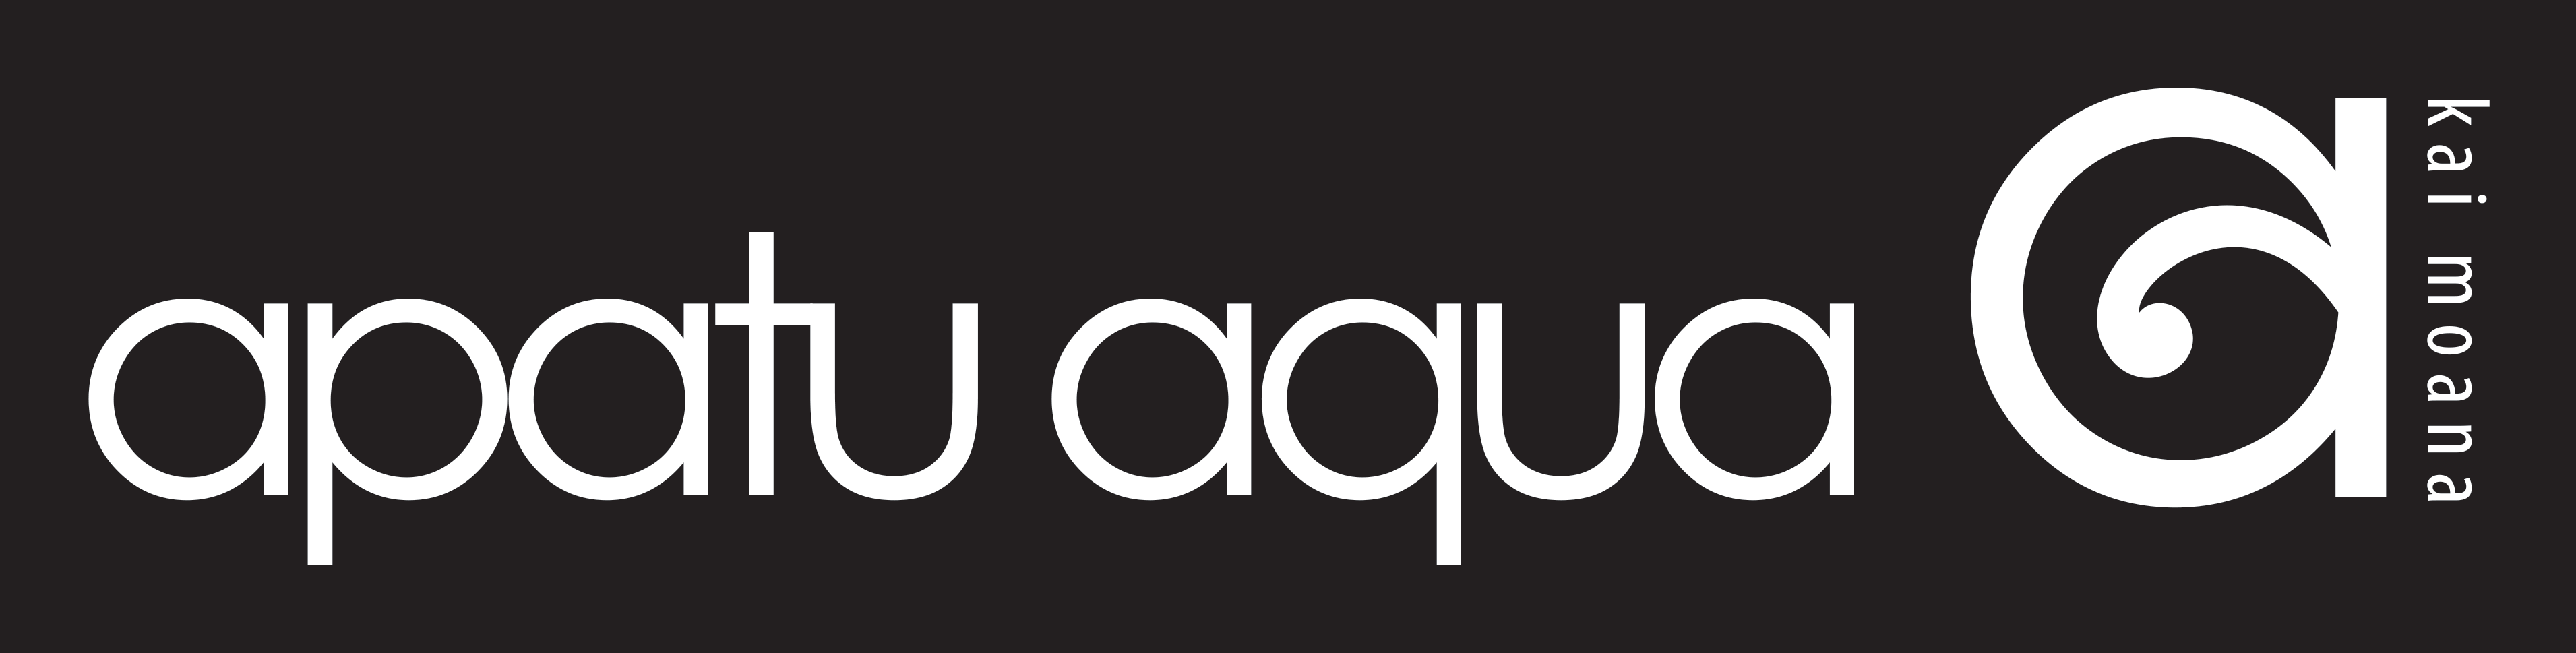 Image result for apatu aqua logo